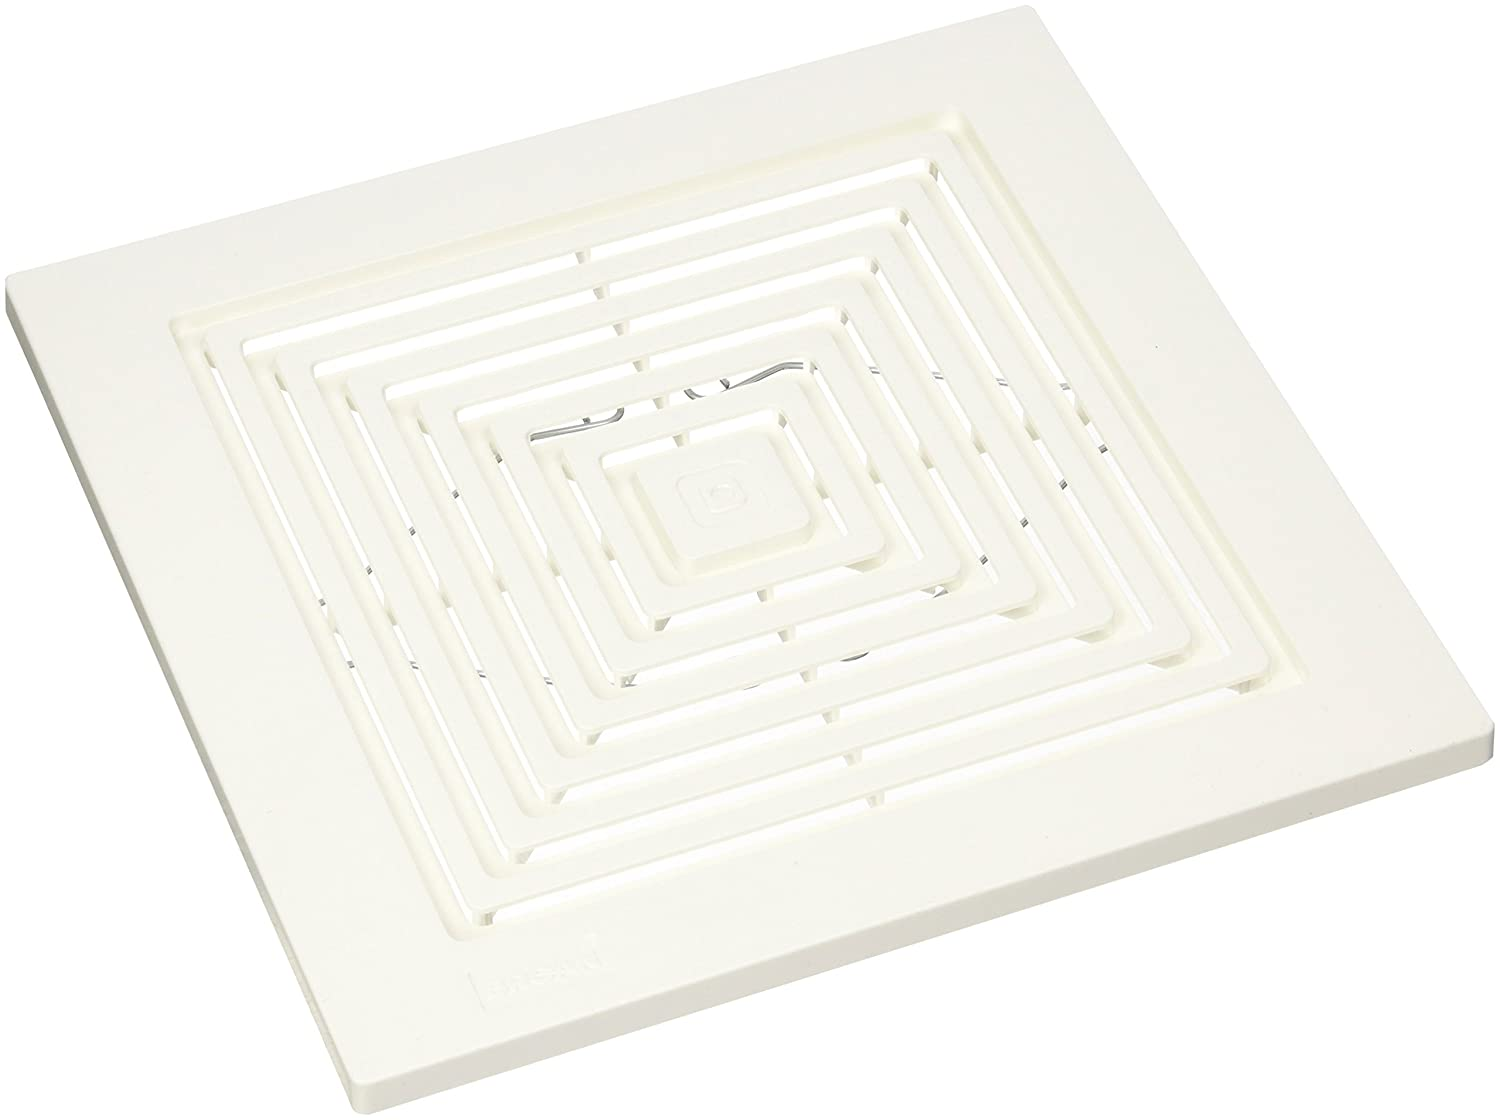 Broan BP90 Replacement Grille for the 688 Bath Fan Lumtopia